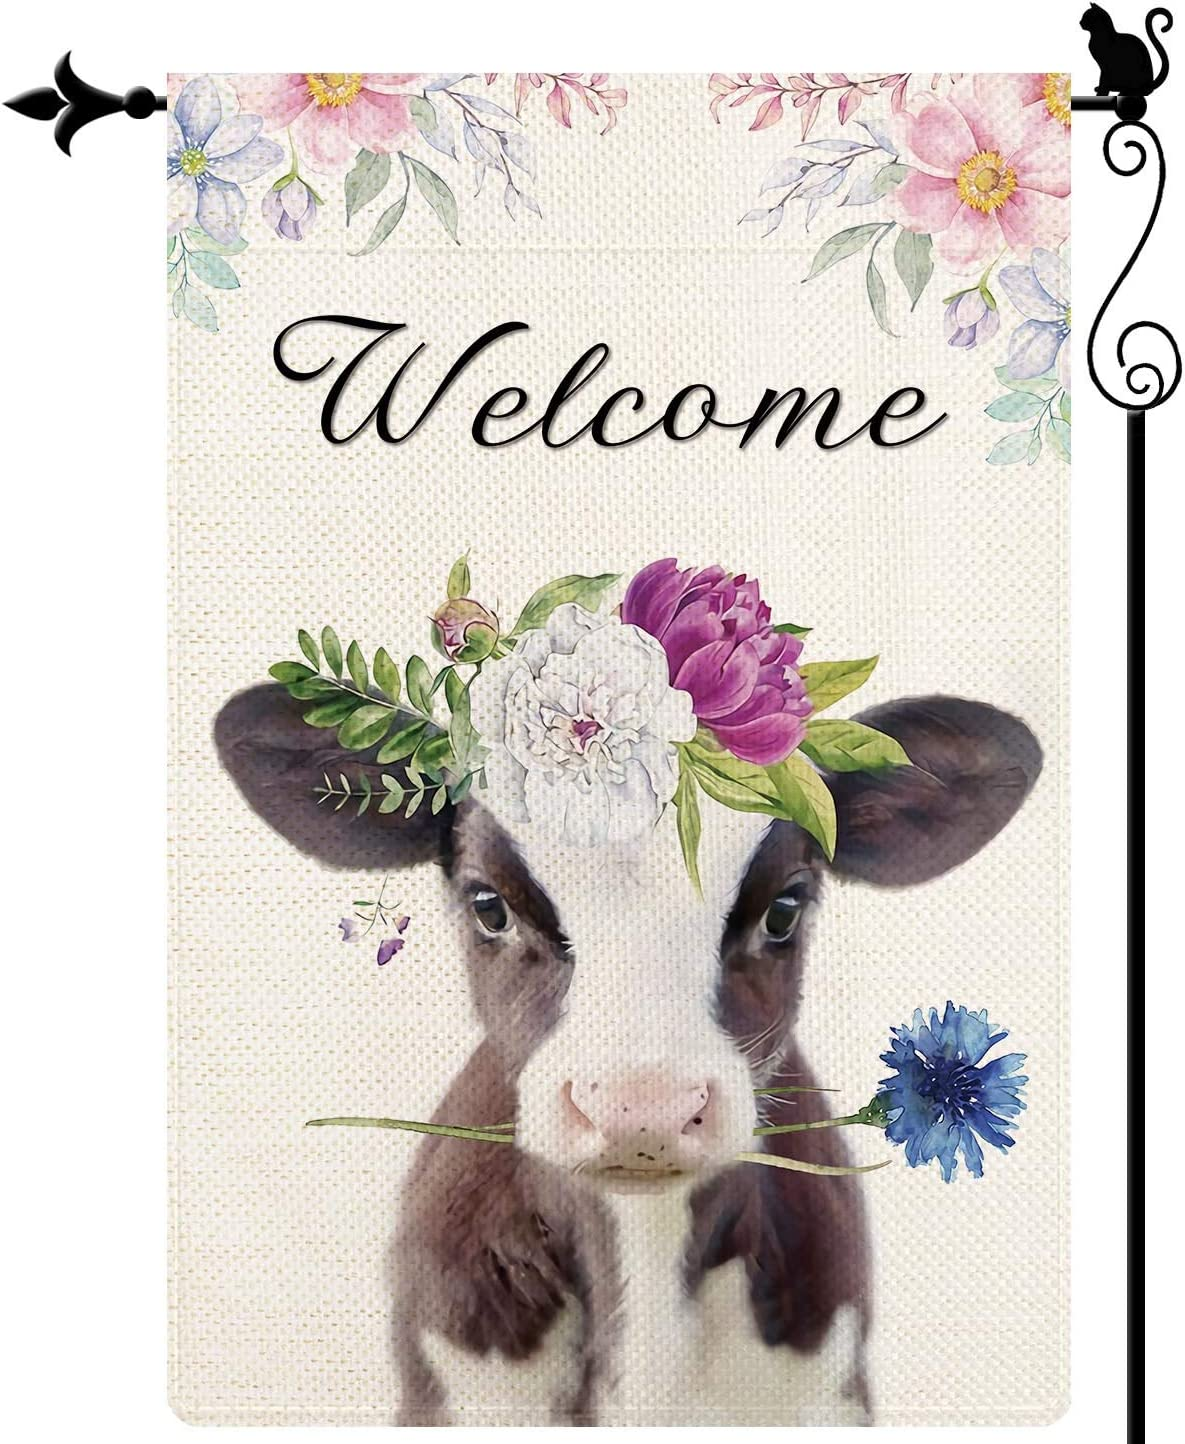 Gormcore Welcome Watercolor Cow Flowers Garden Flag Sping Summer Garden Flag Vertical Double Sided Yard Lawn Outdoor Decor 12.5x18